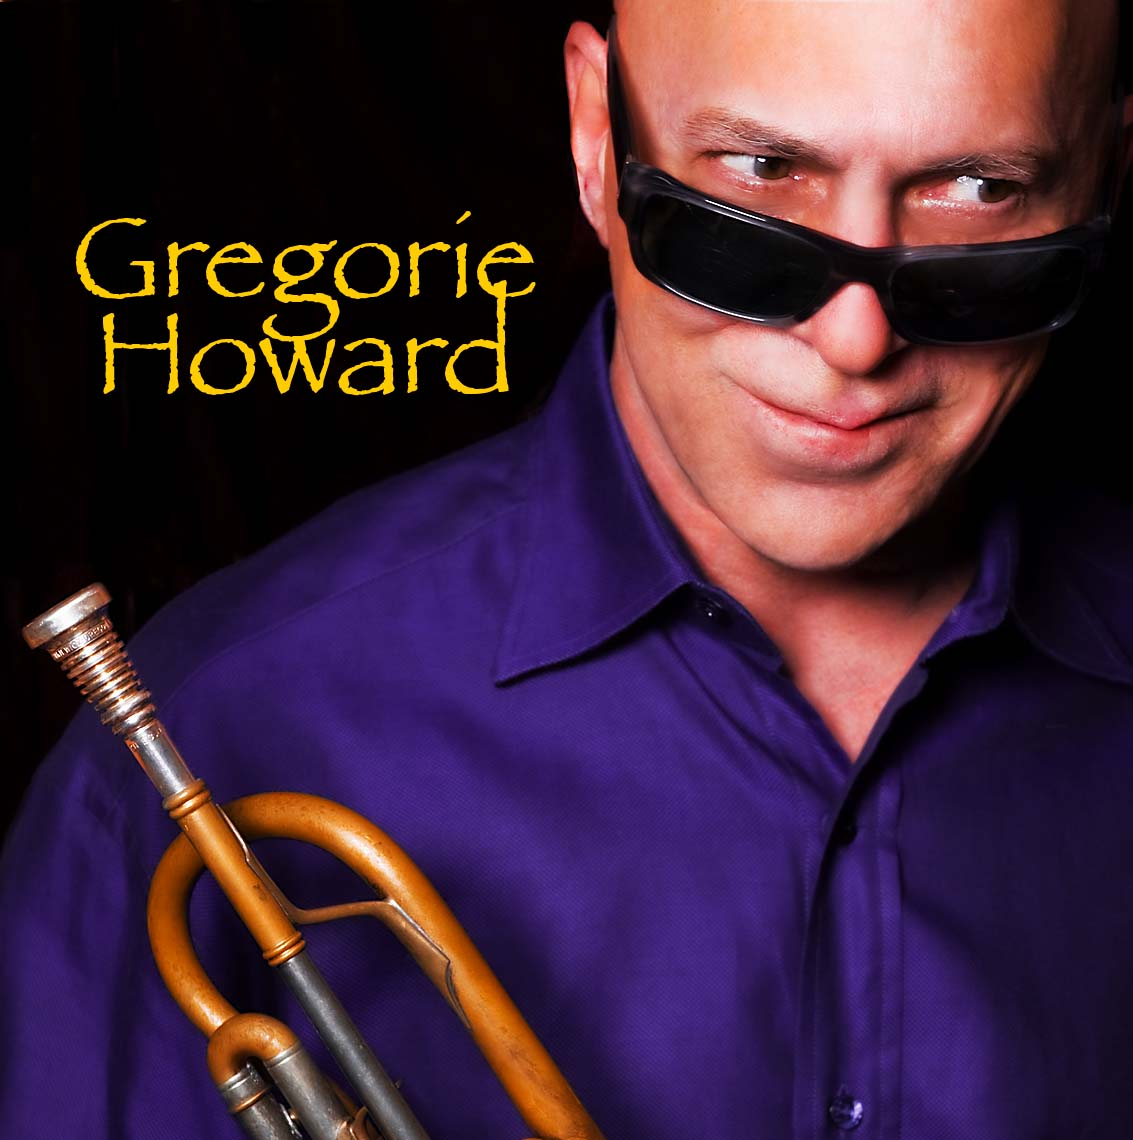 Musician/Behavioral Specialist-gregorie-howard.jpg